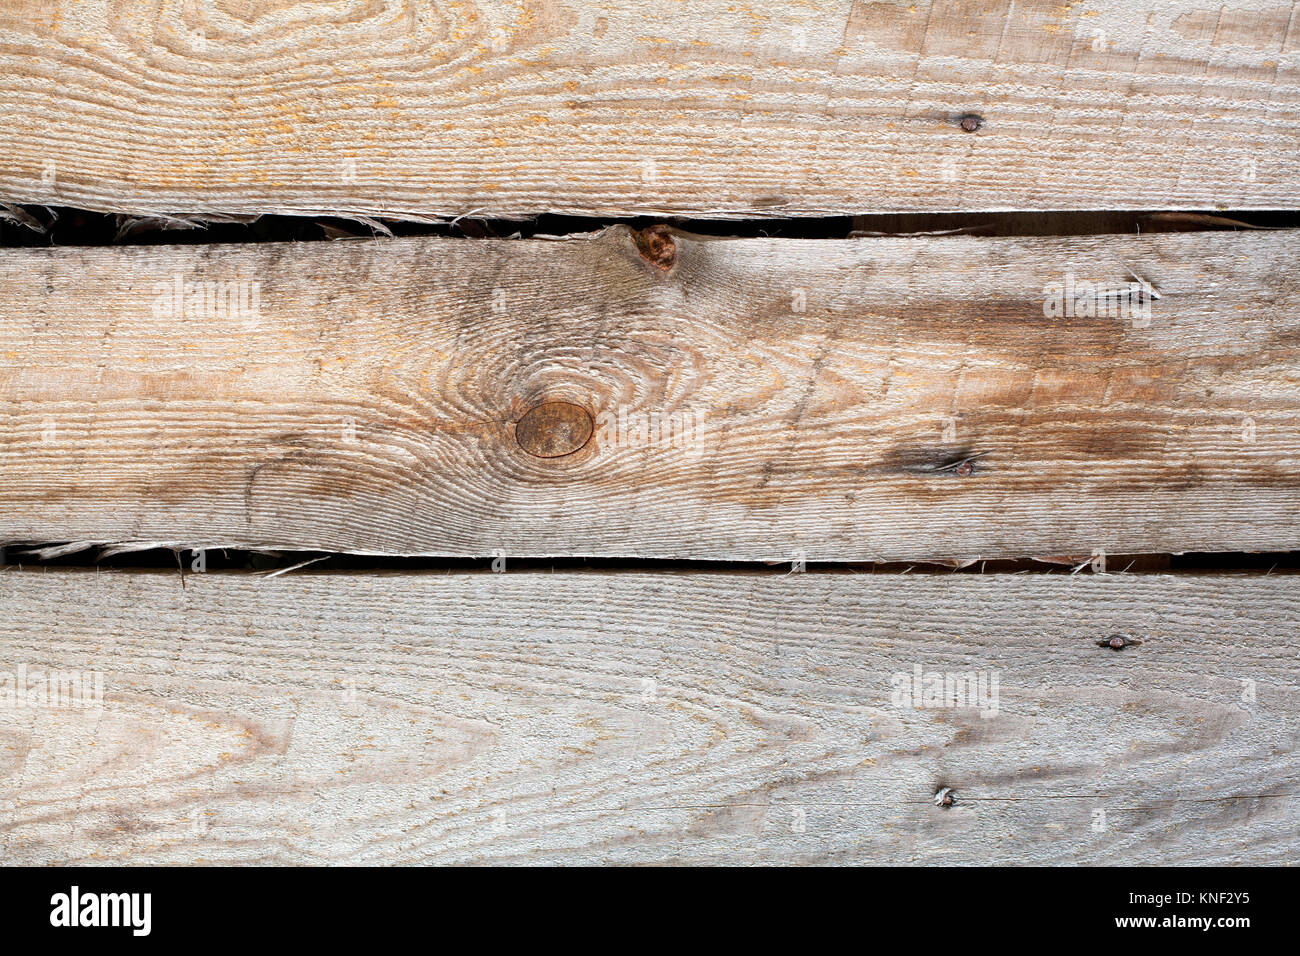 Wood texture natural pattern. Aged wooden planks background. macro view photo - Stock Image